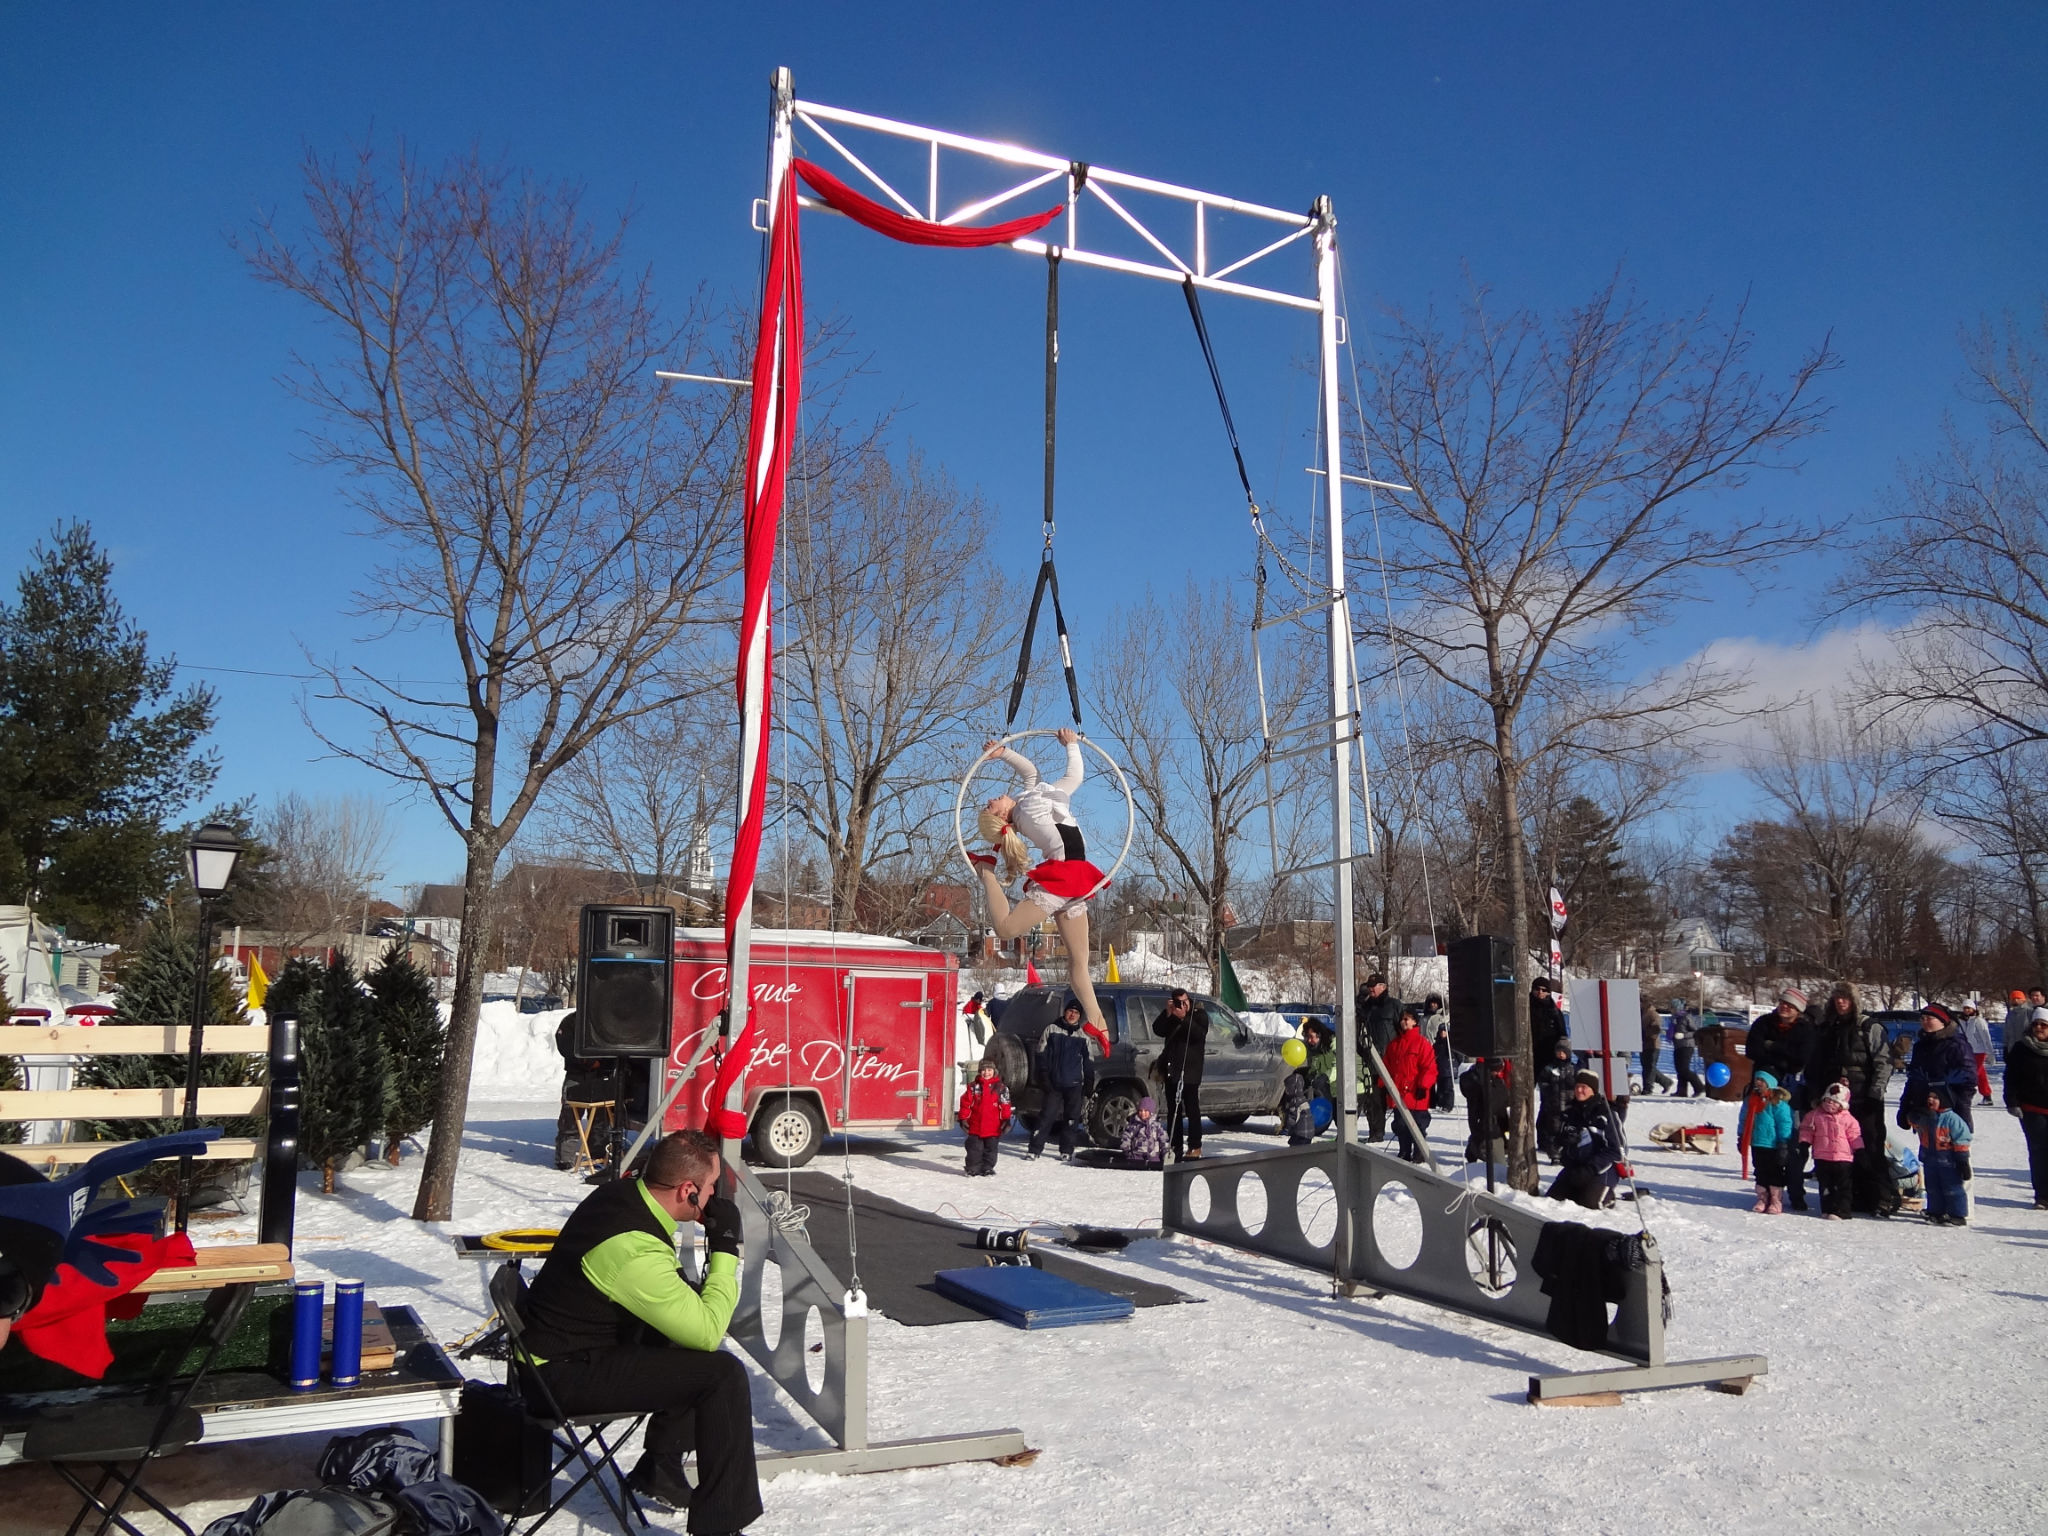 Magog Winter Festival with a gymnast rings dancing about her elevated ring